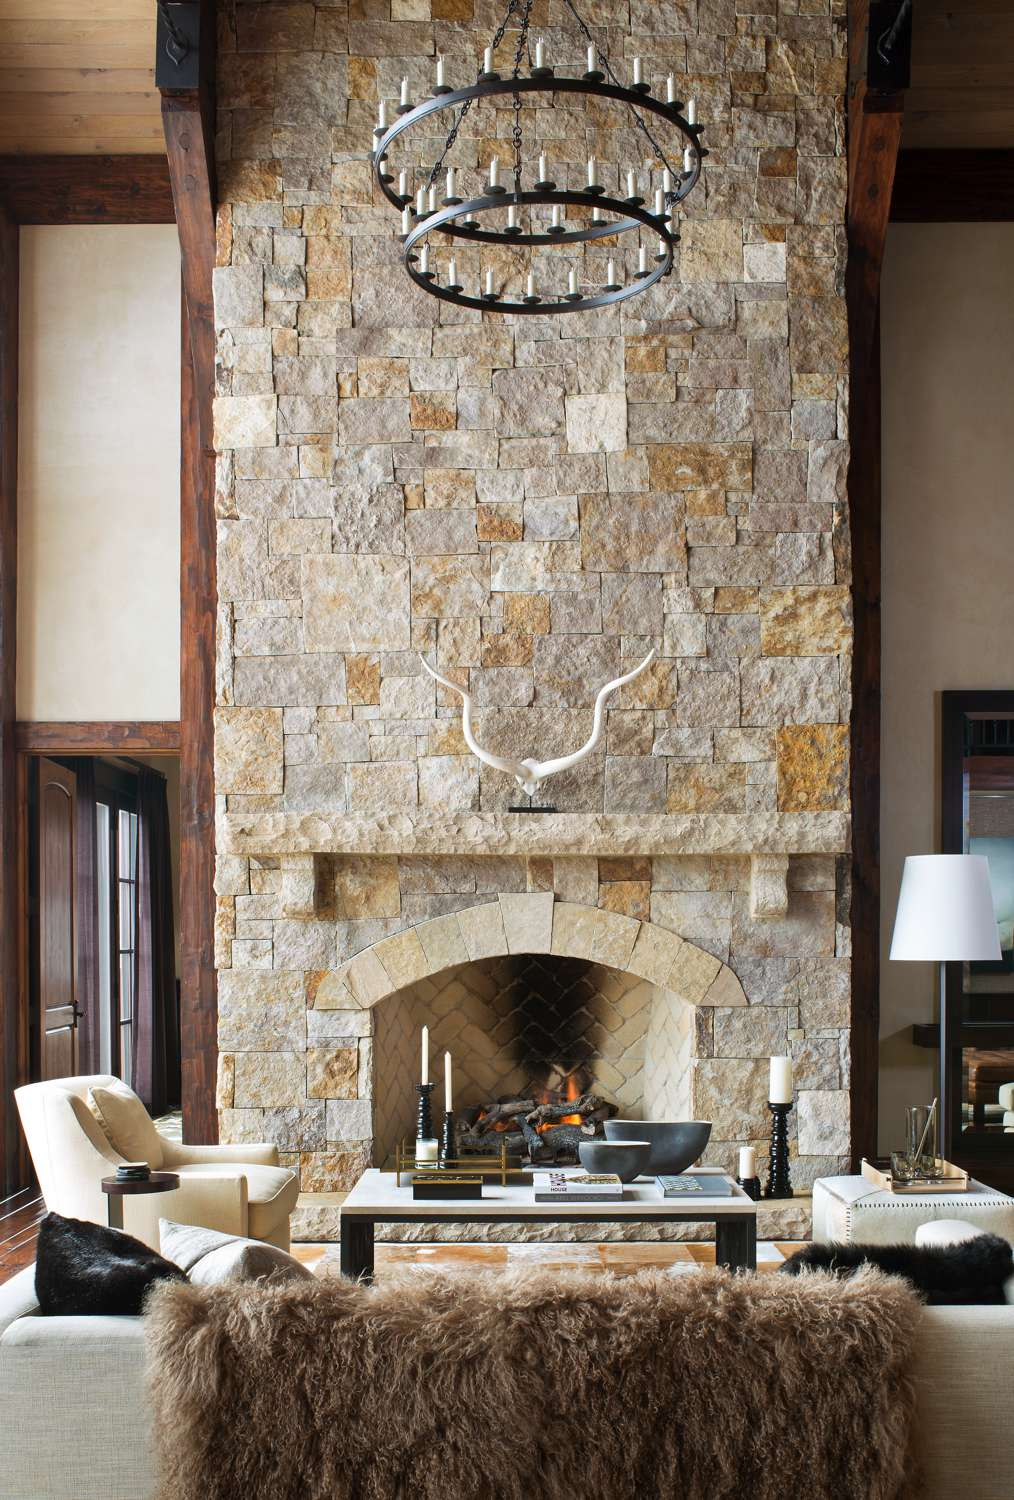 interiors with fireplace